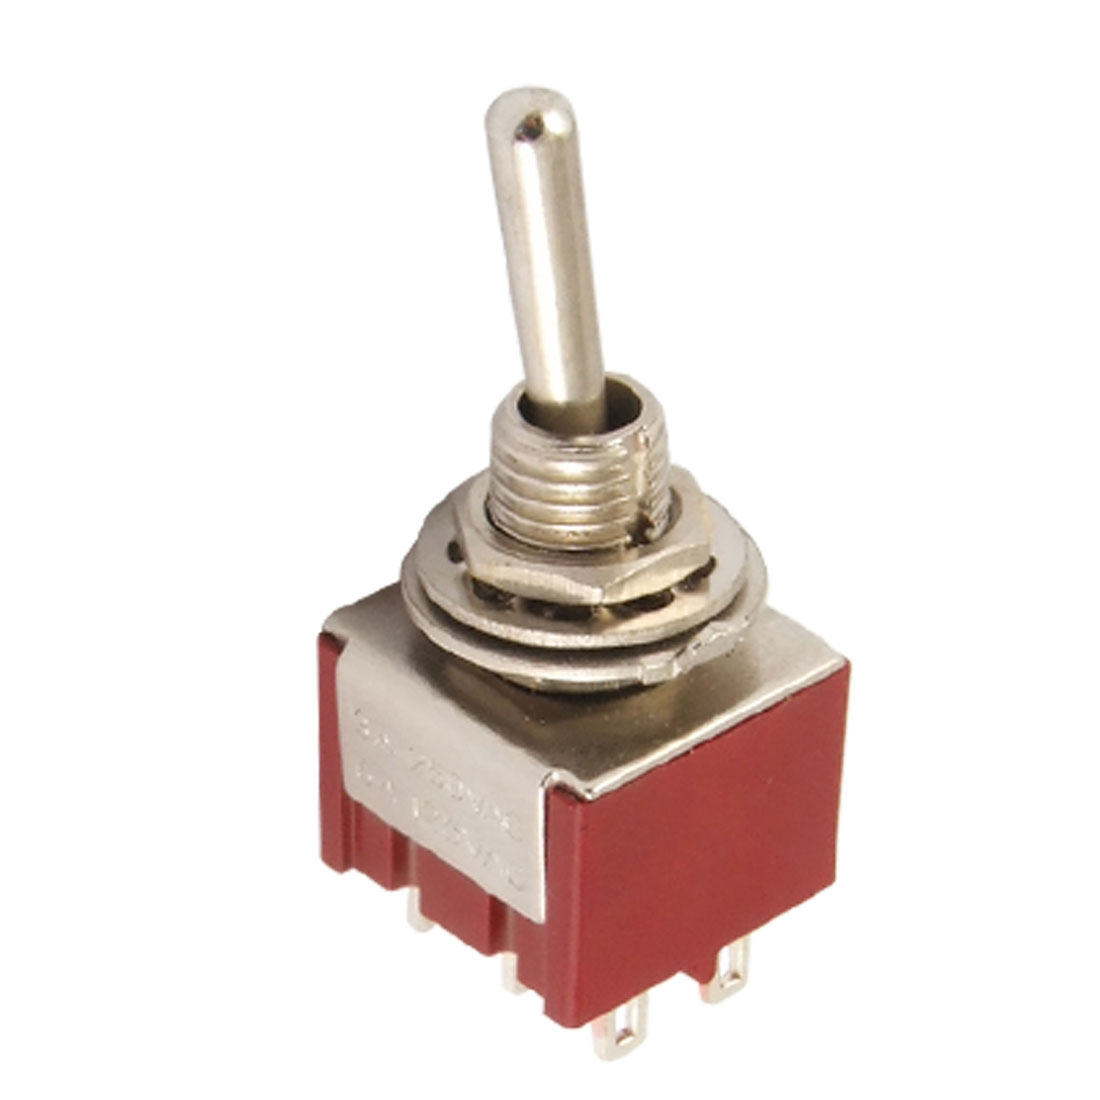 AC 250V/2A 120V/5A 2 Position Metal Handle On/On DPDT Mini Toggle Switch